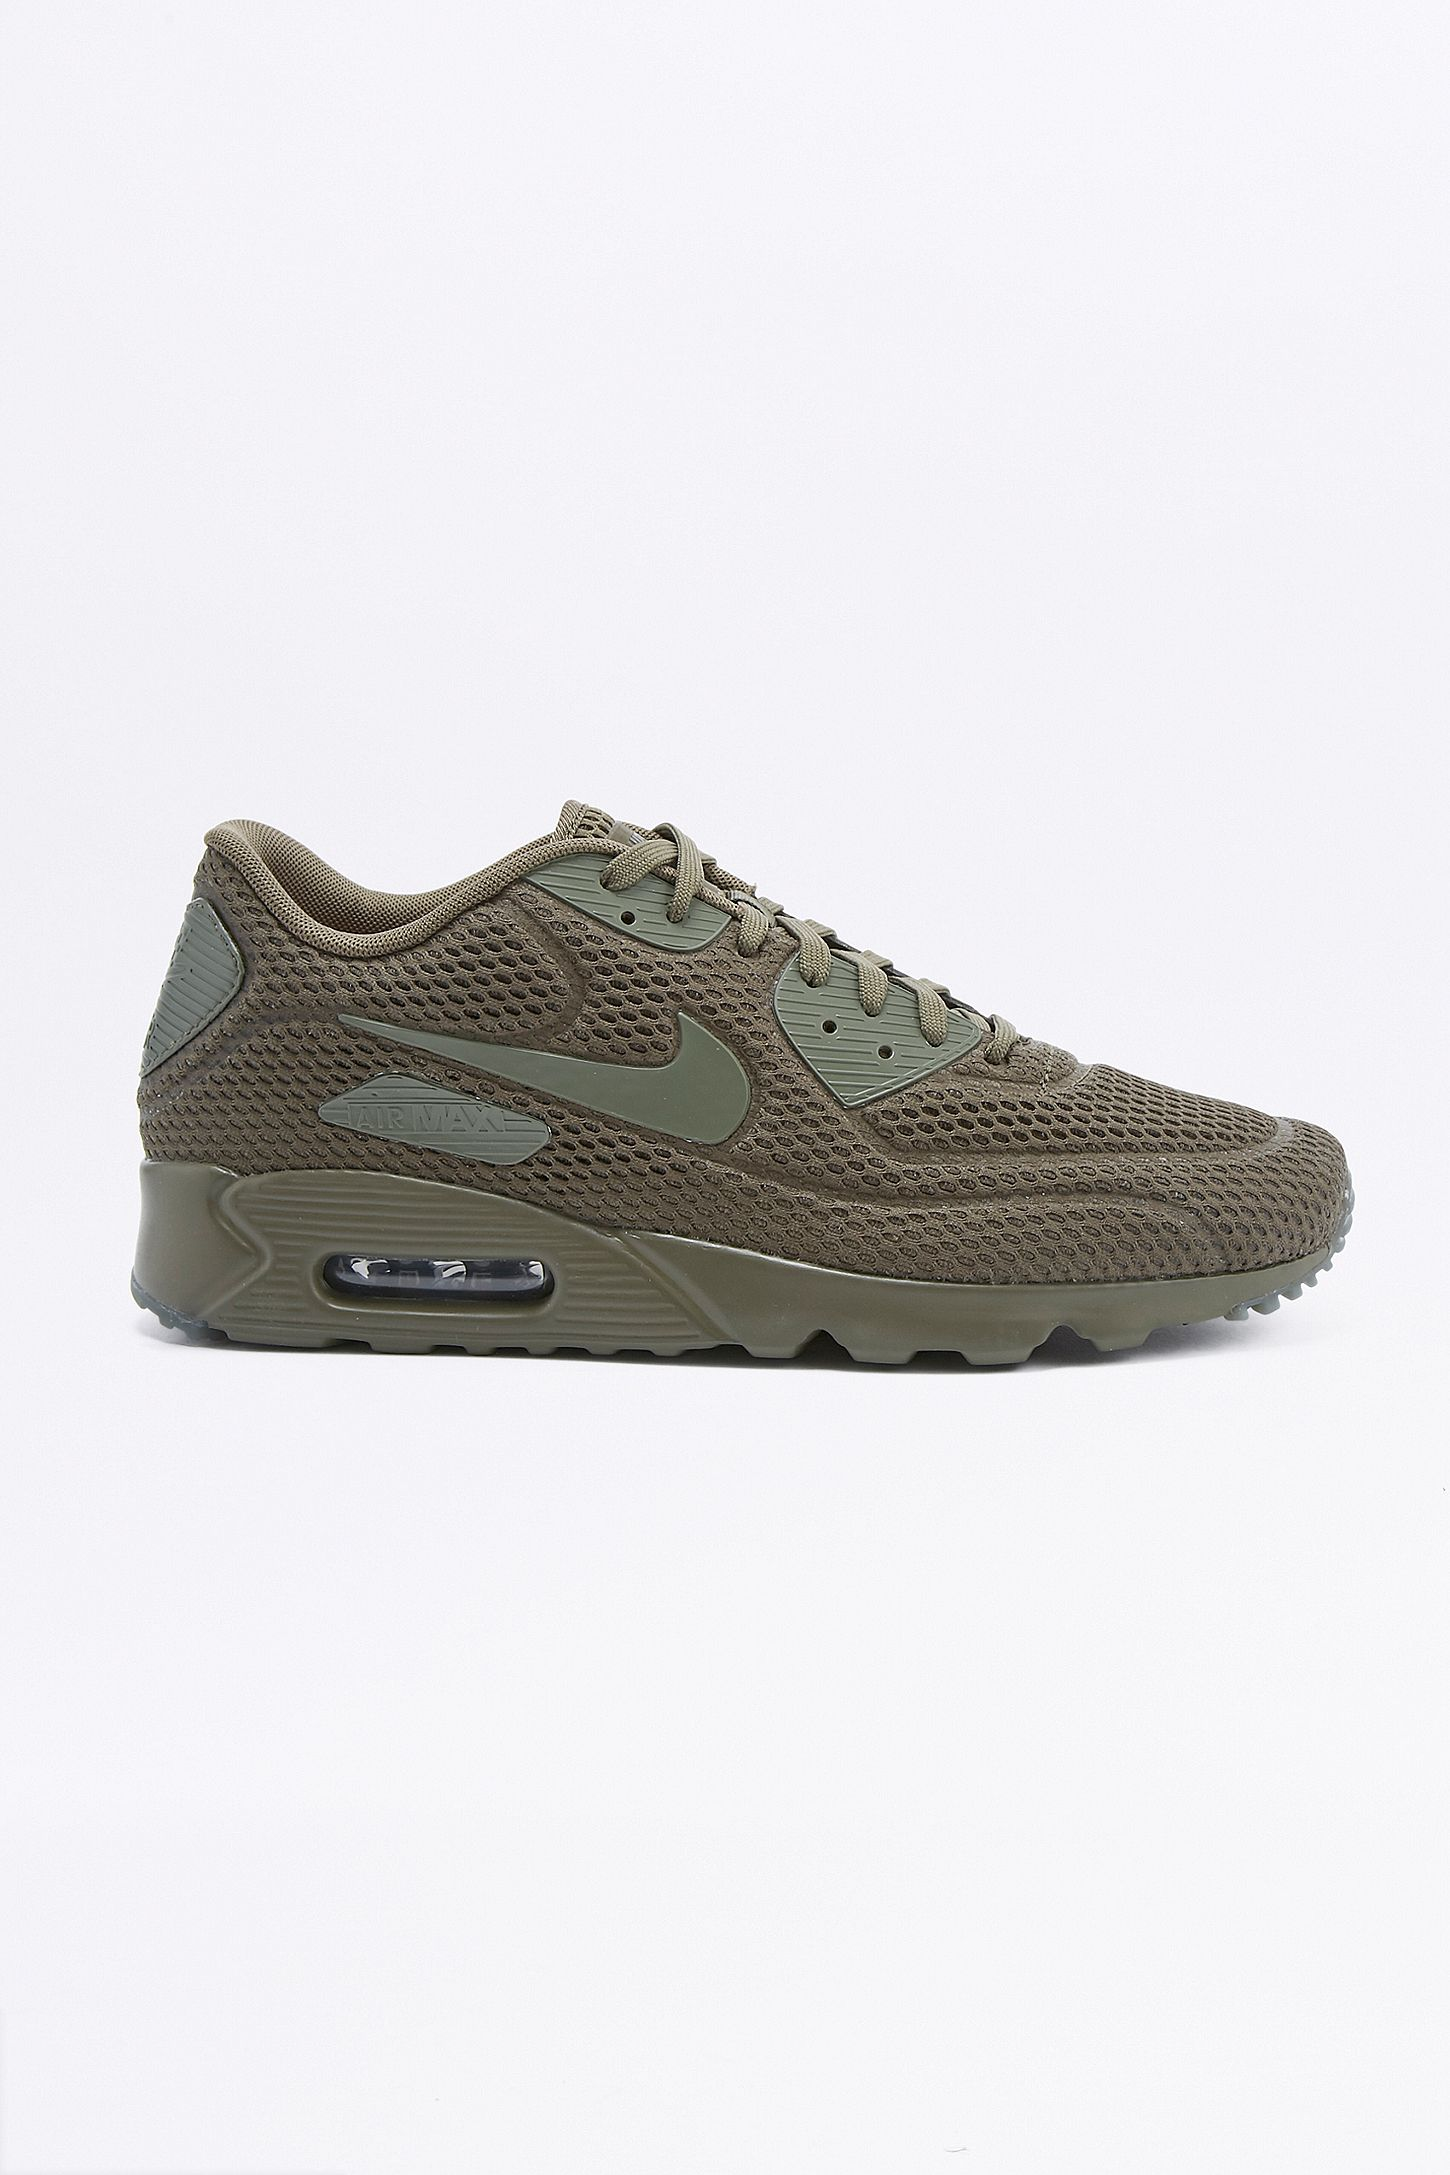 2e2b6d46a481 Nike Air Max 90 Ultra Breathe Khaki Trainers. Click on image to zoom. Hover  to zoom. Double Tap to Zoom